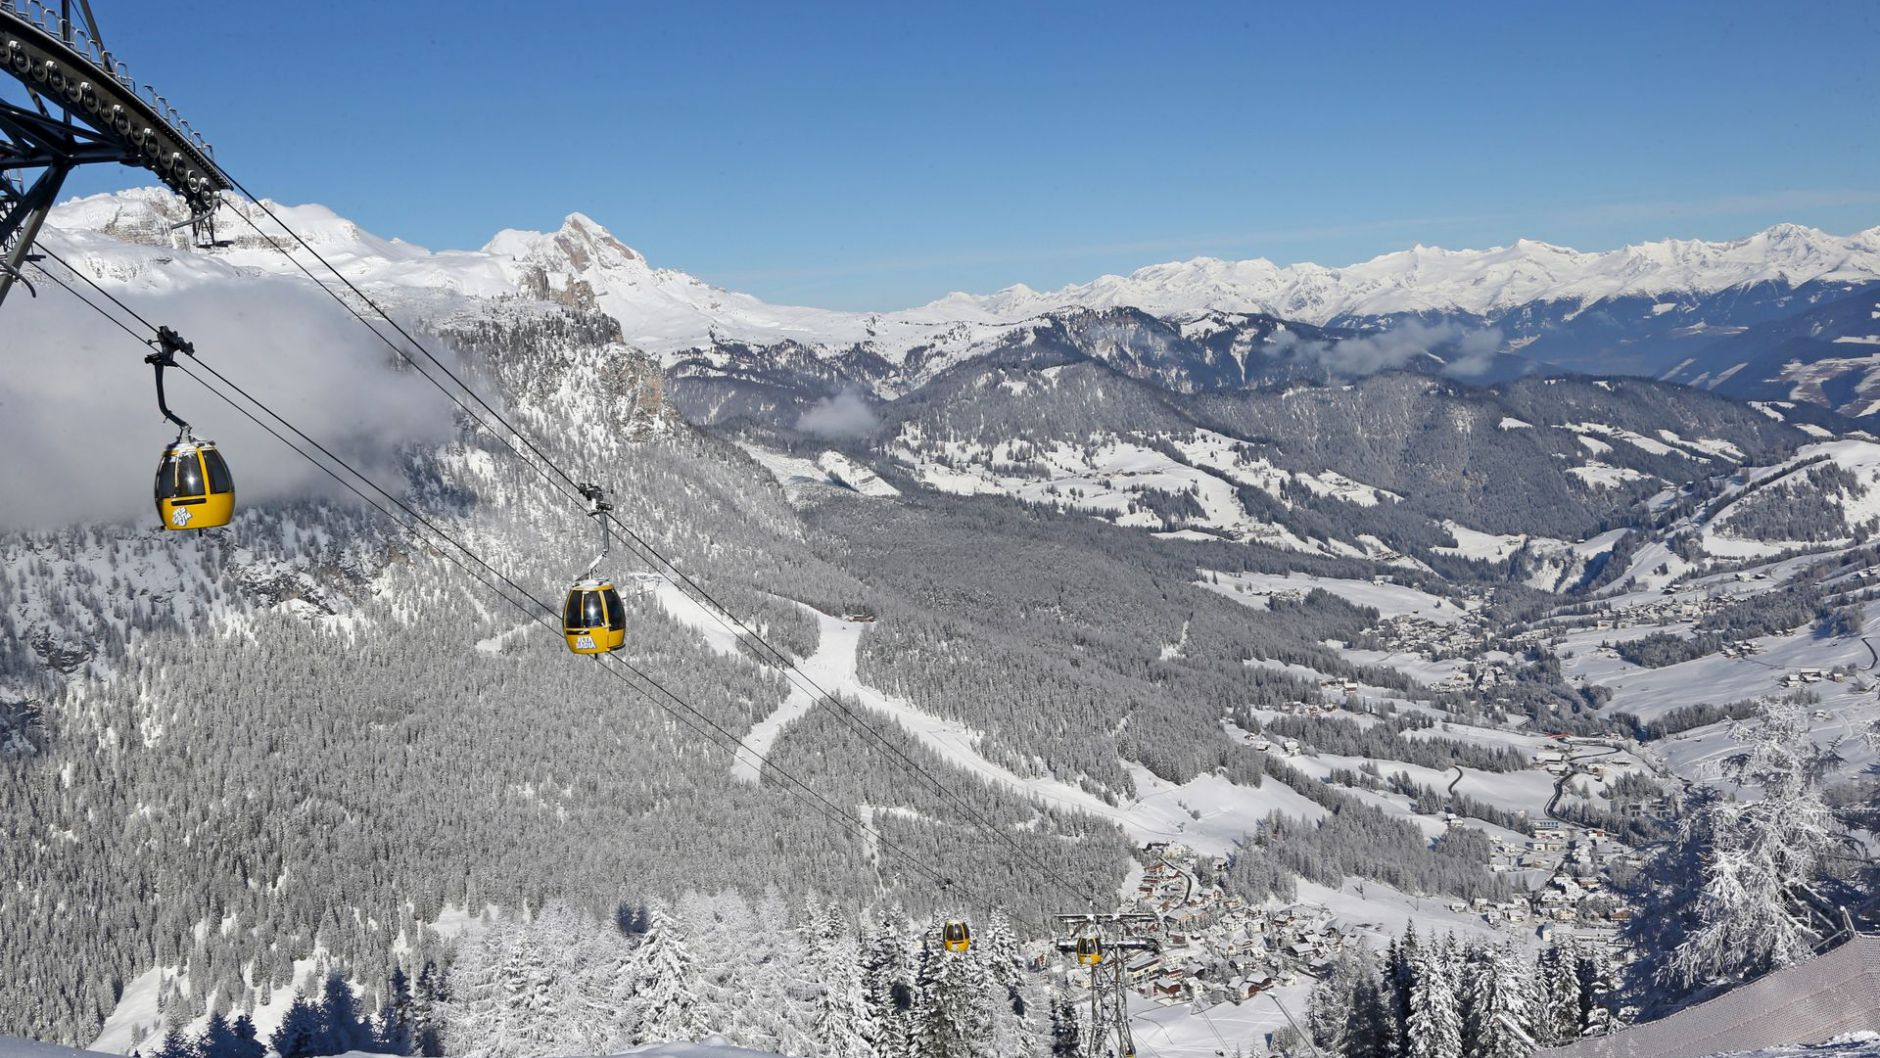 Winter activities in Alta Badia Holidays in South Tyrol